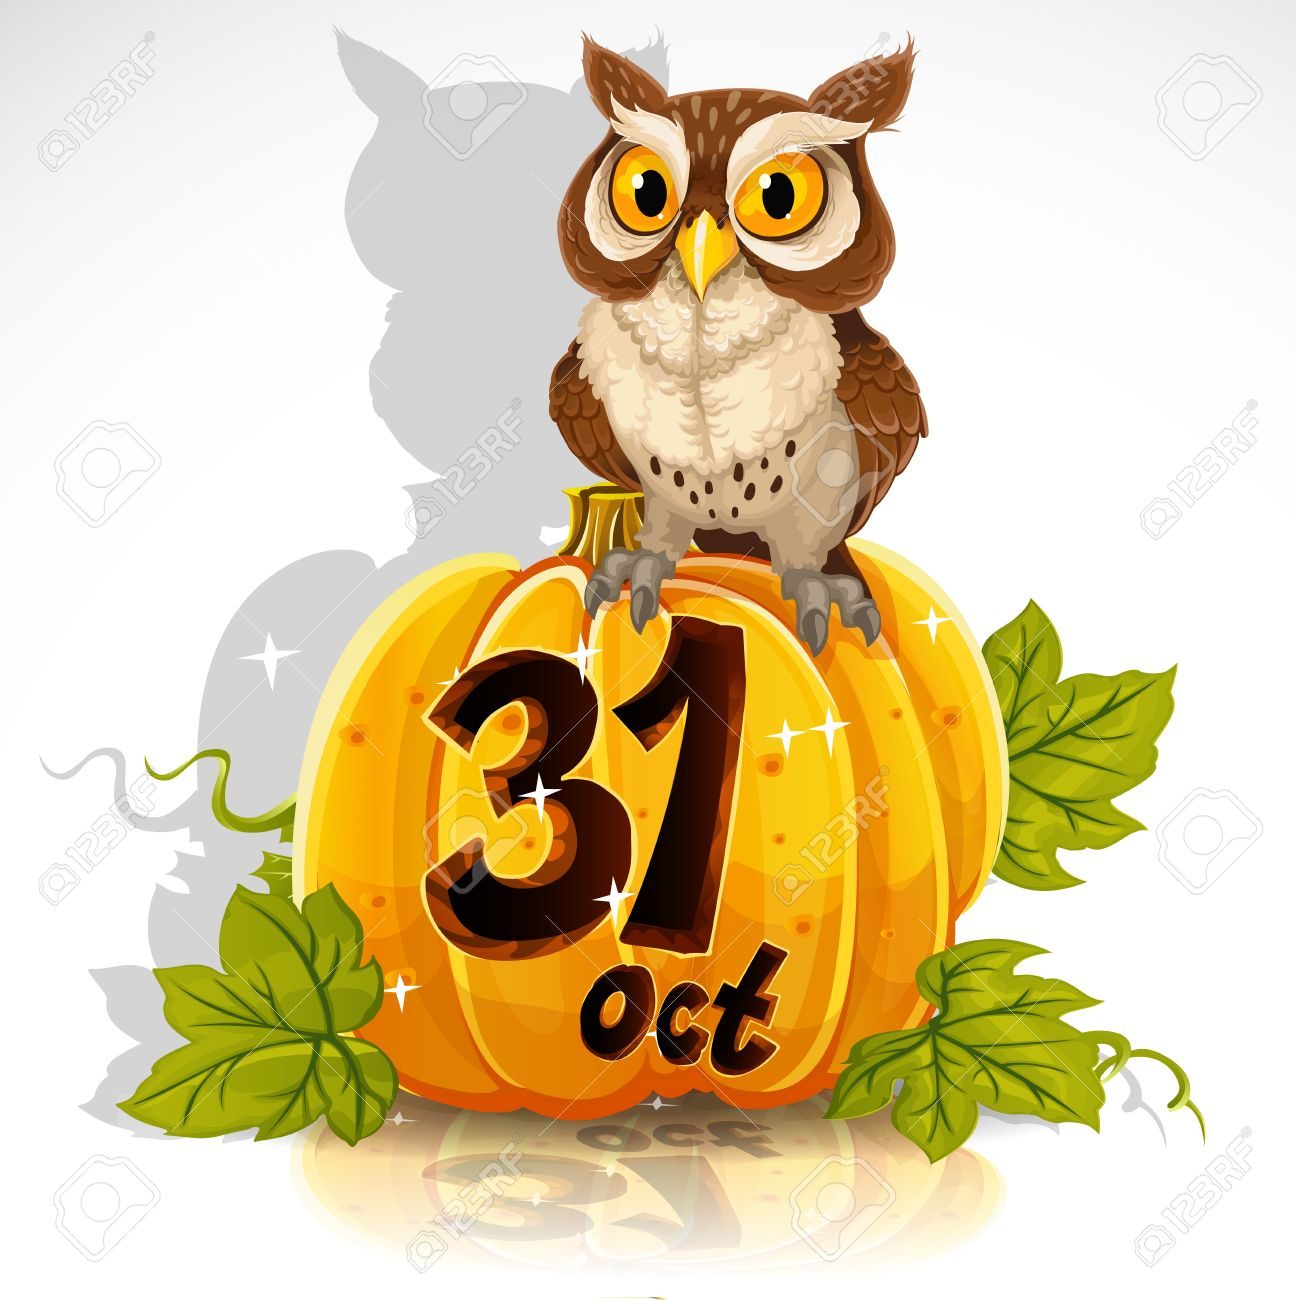 Wise Owl Sit On A Pumpkin - Halloween Party October 31 Royalty ...